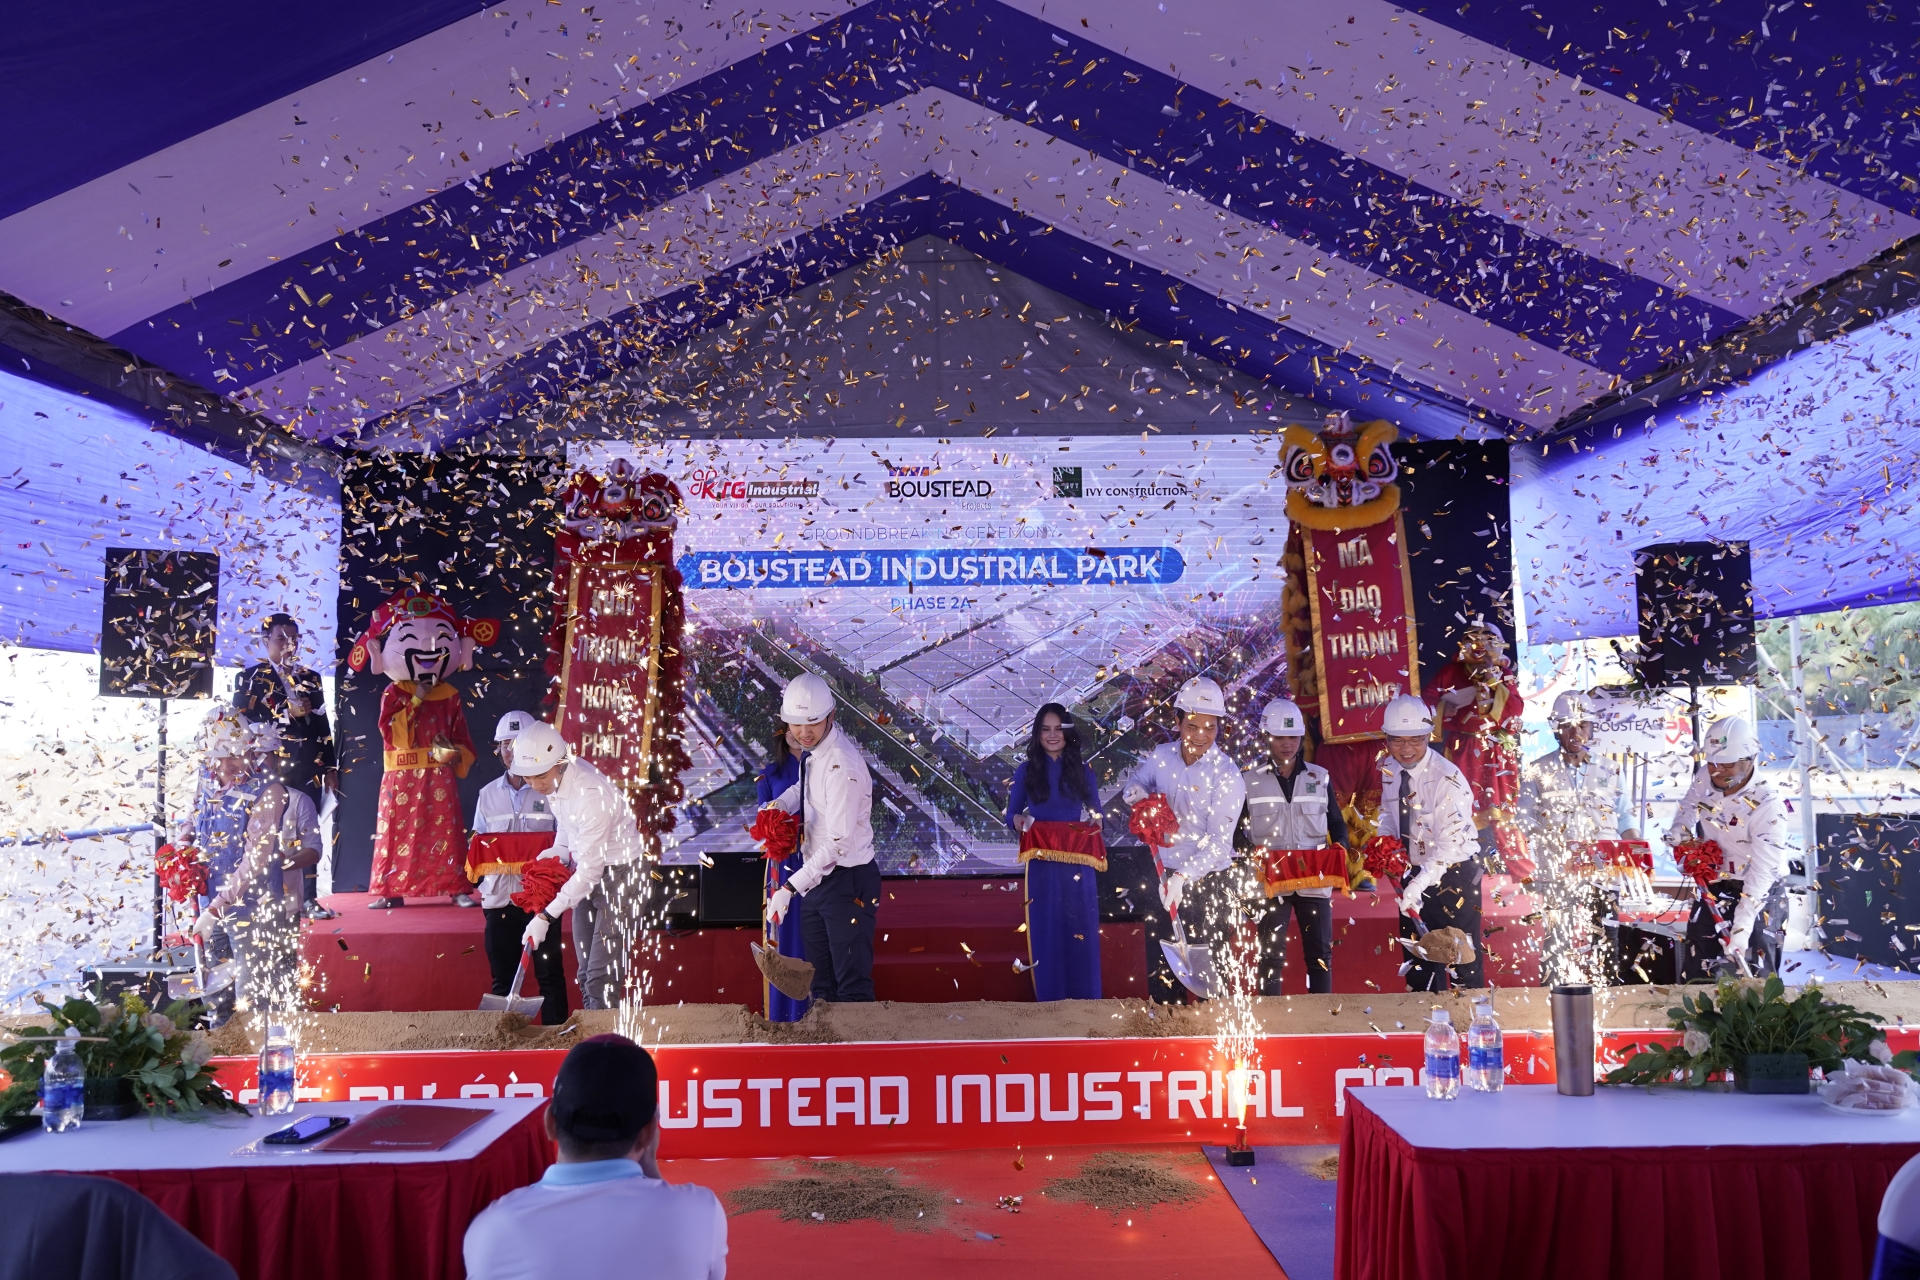 Groundbreaking ceremony for Boustead IP phase 2A managed by Boustead & KTG Industrial